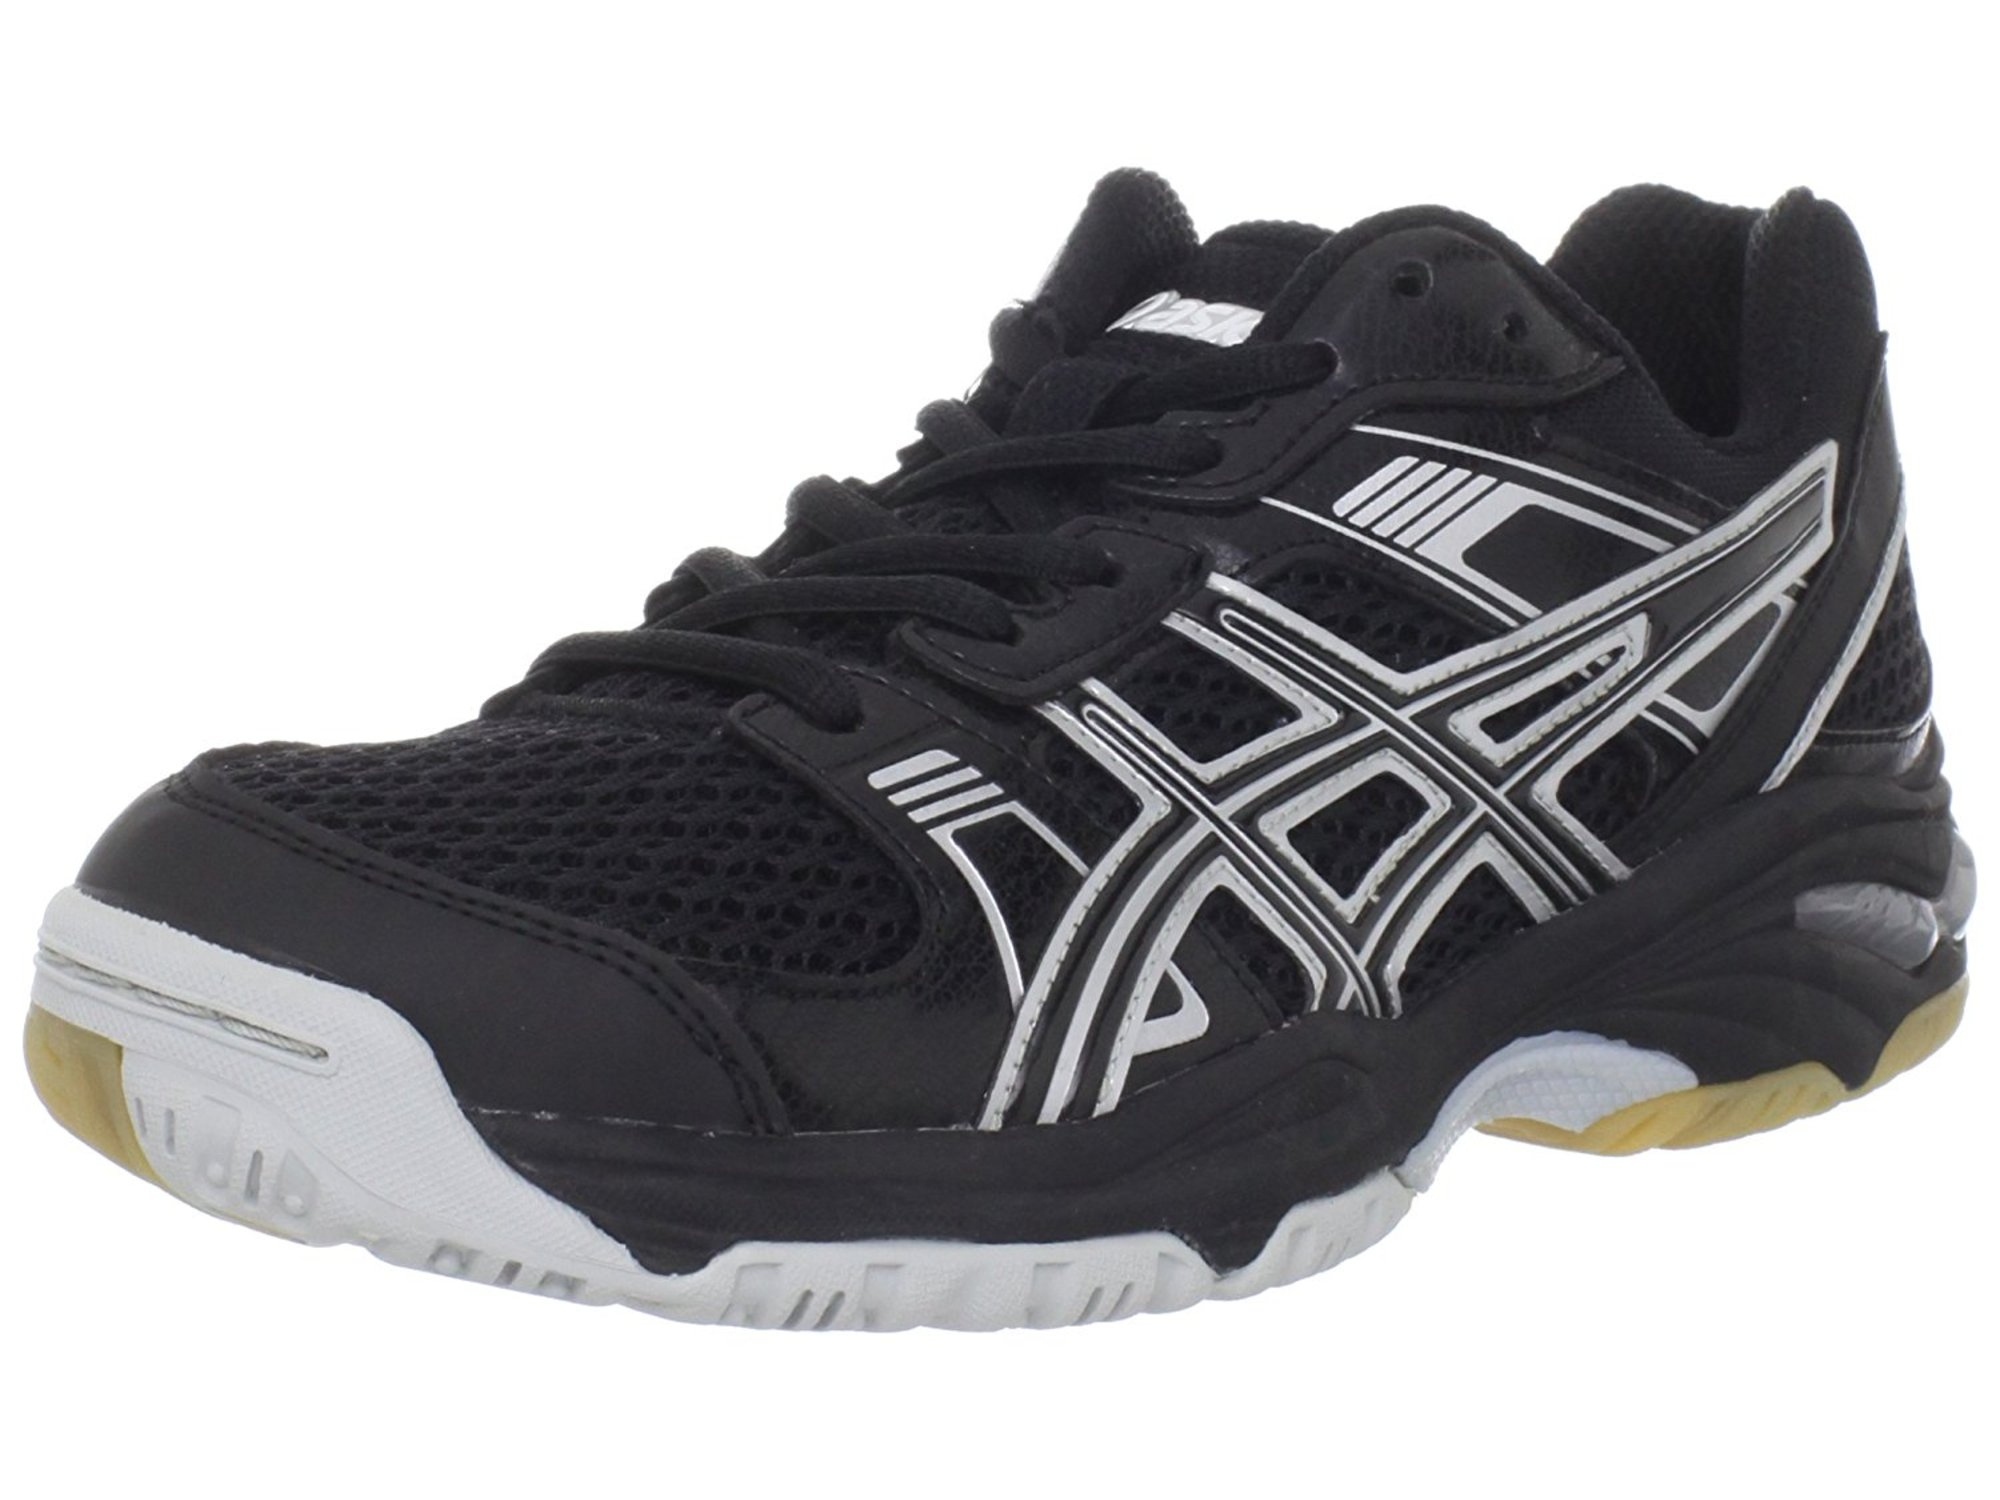 Asics Womens 1140 V Low Top Lace Up Running Sneaker by Asics